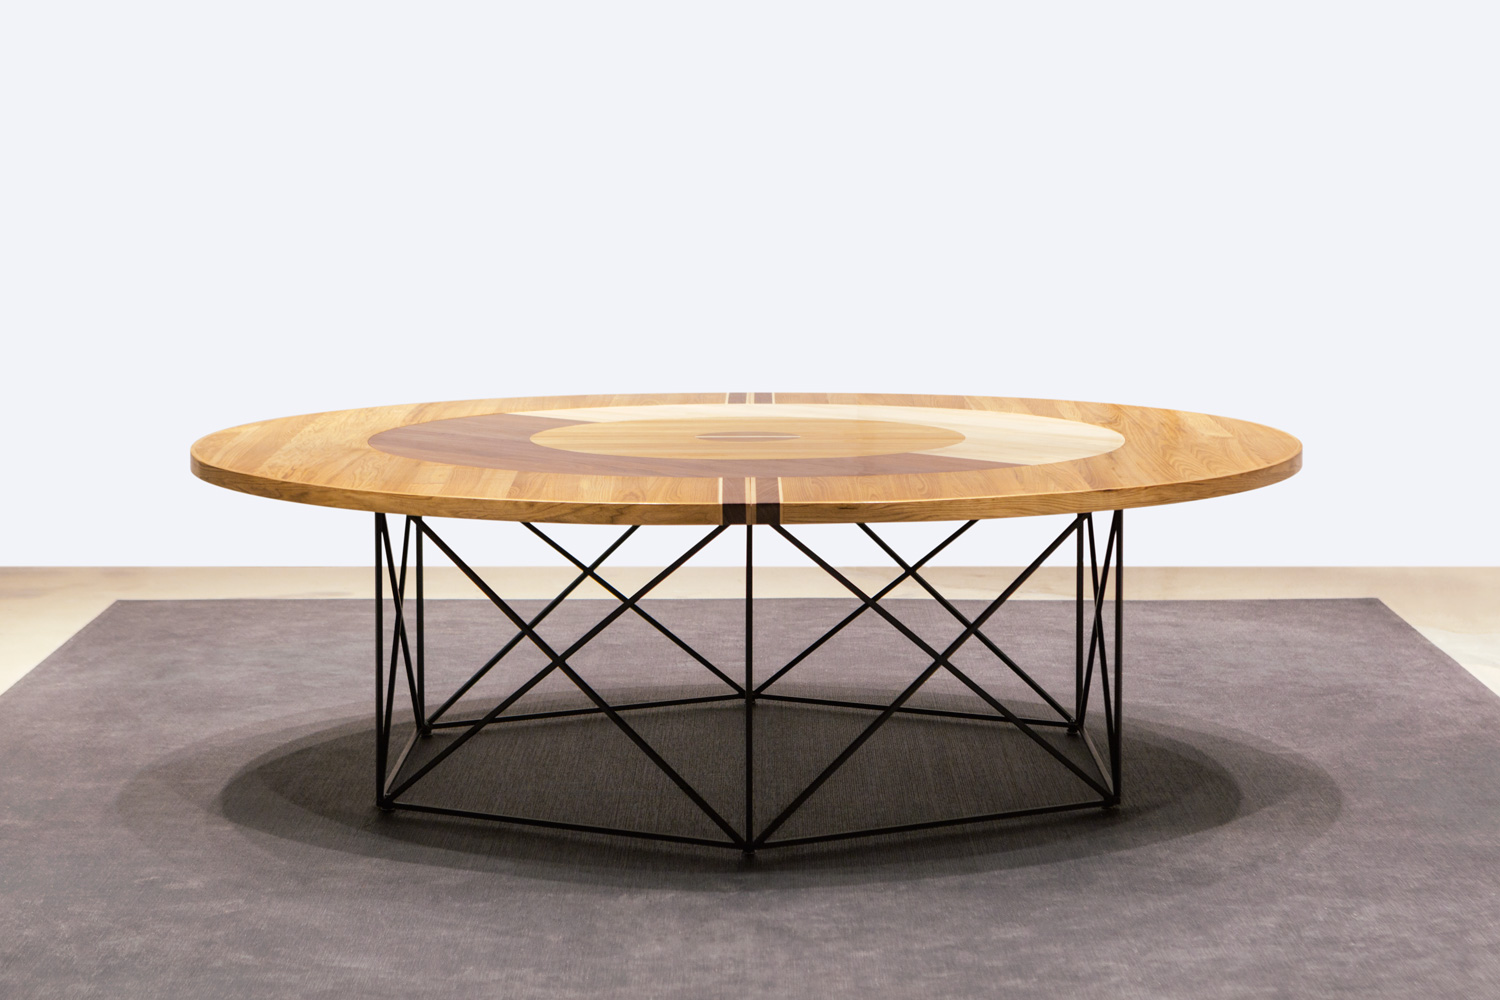 The epicycle table bellwether for Table th width ignored